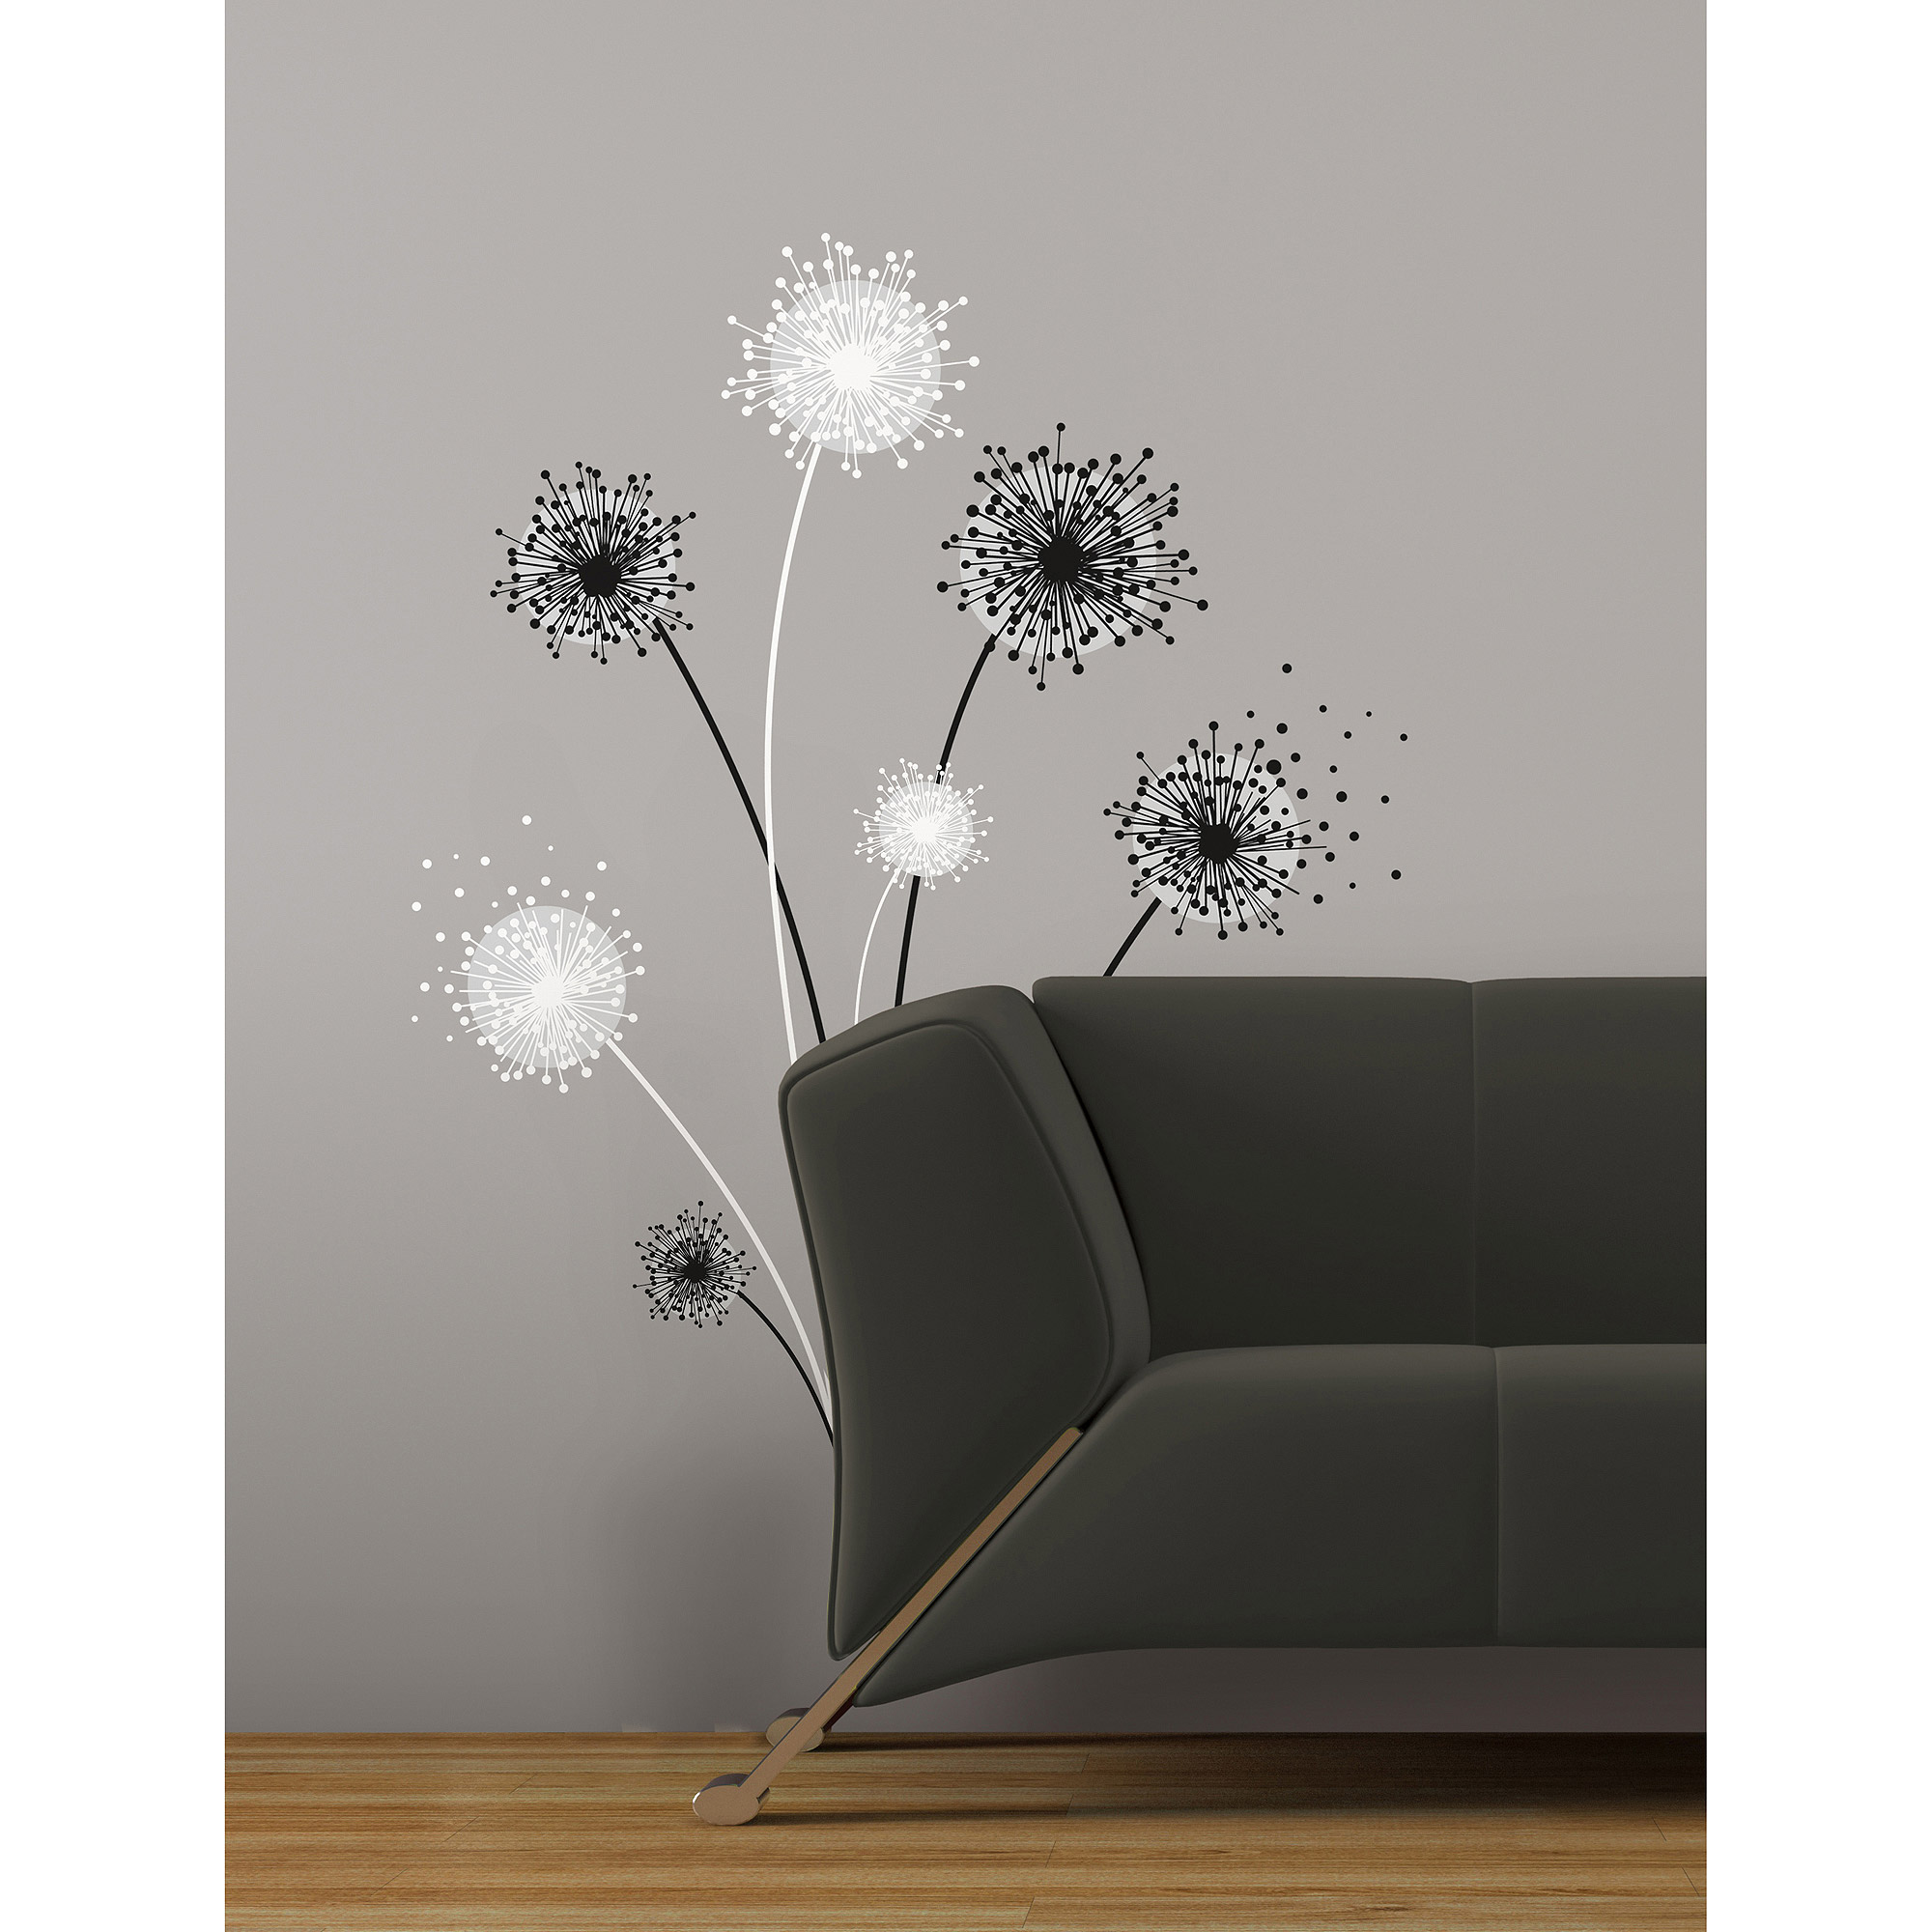 Roommates graphic dandelion peel stick giant wall decal roommates graphic dandelion peel stick giant wall decal walmart amipublicfo Images